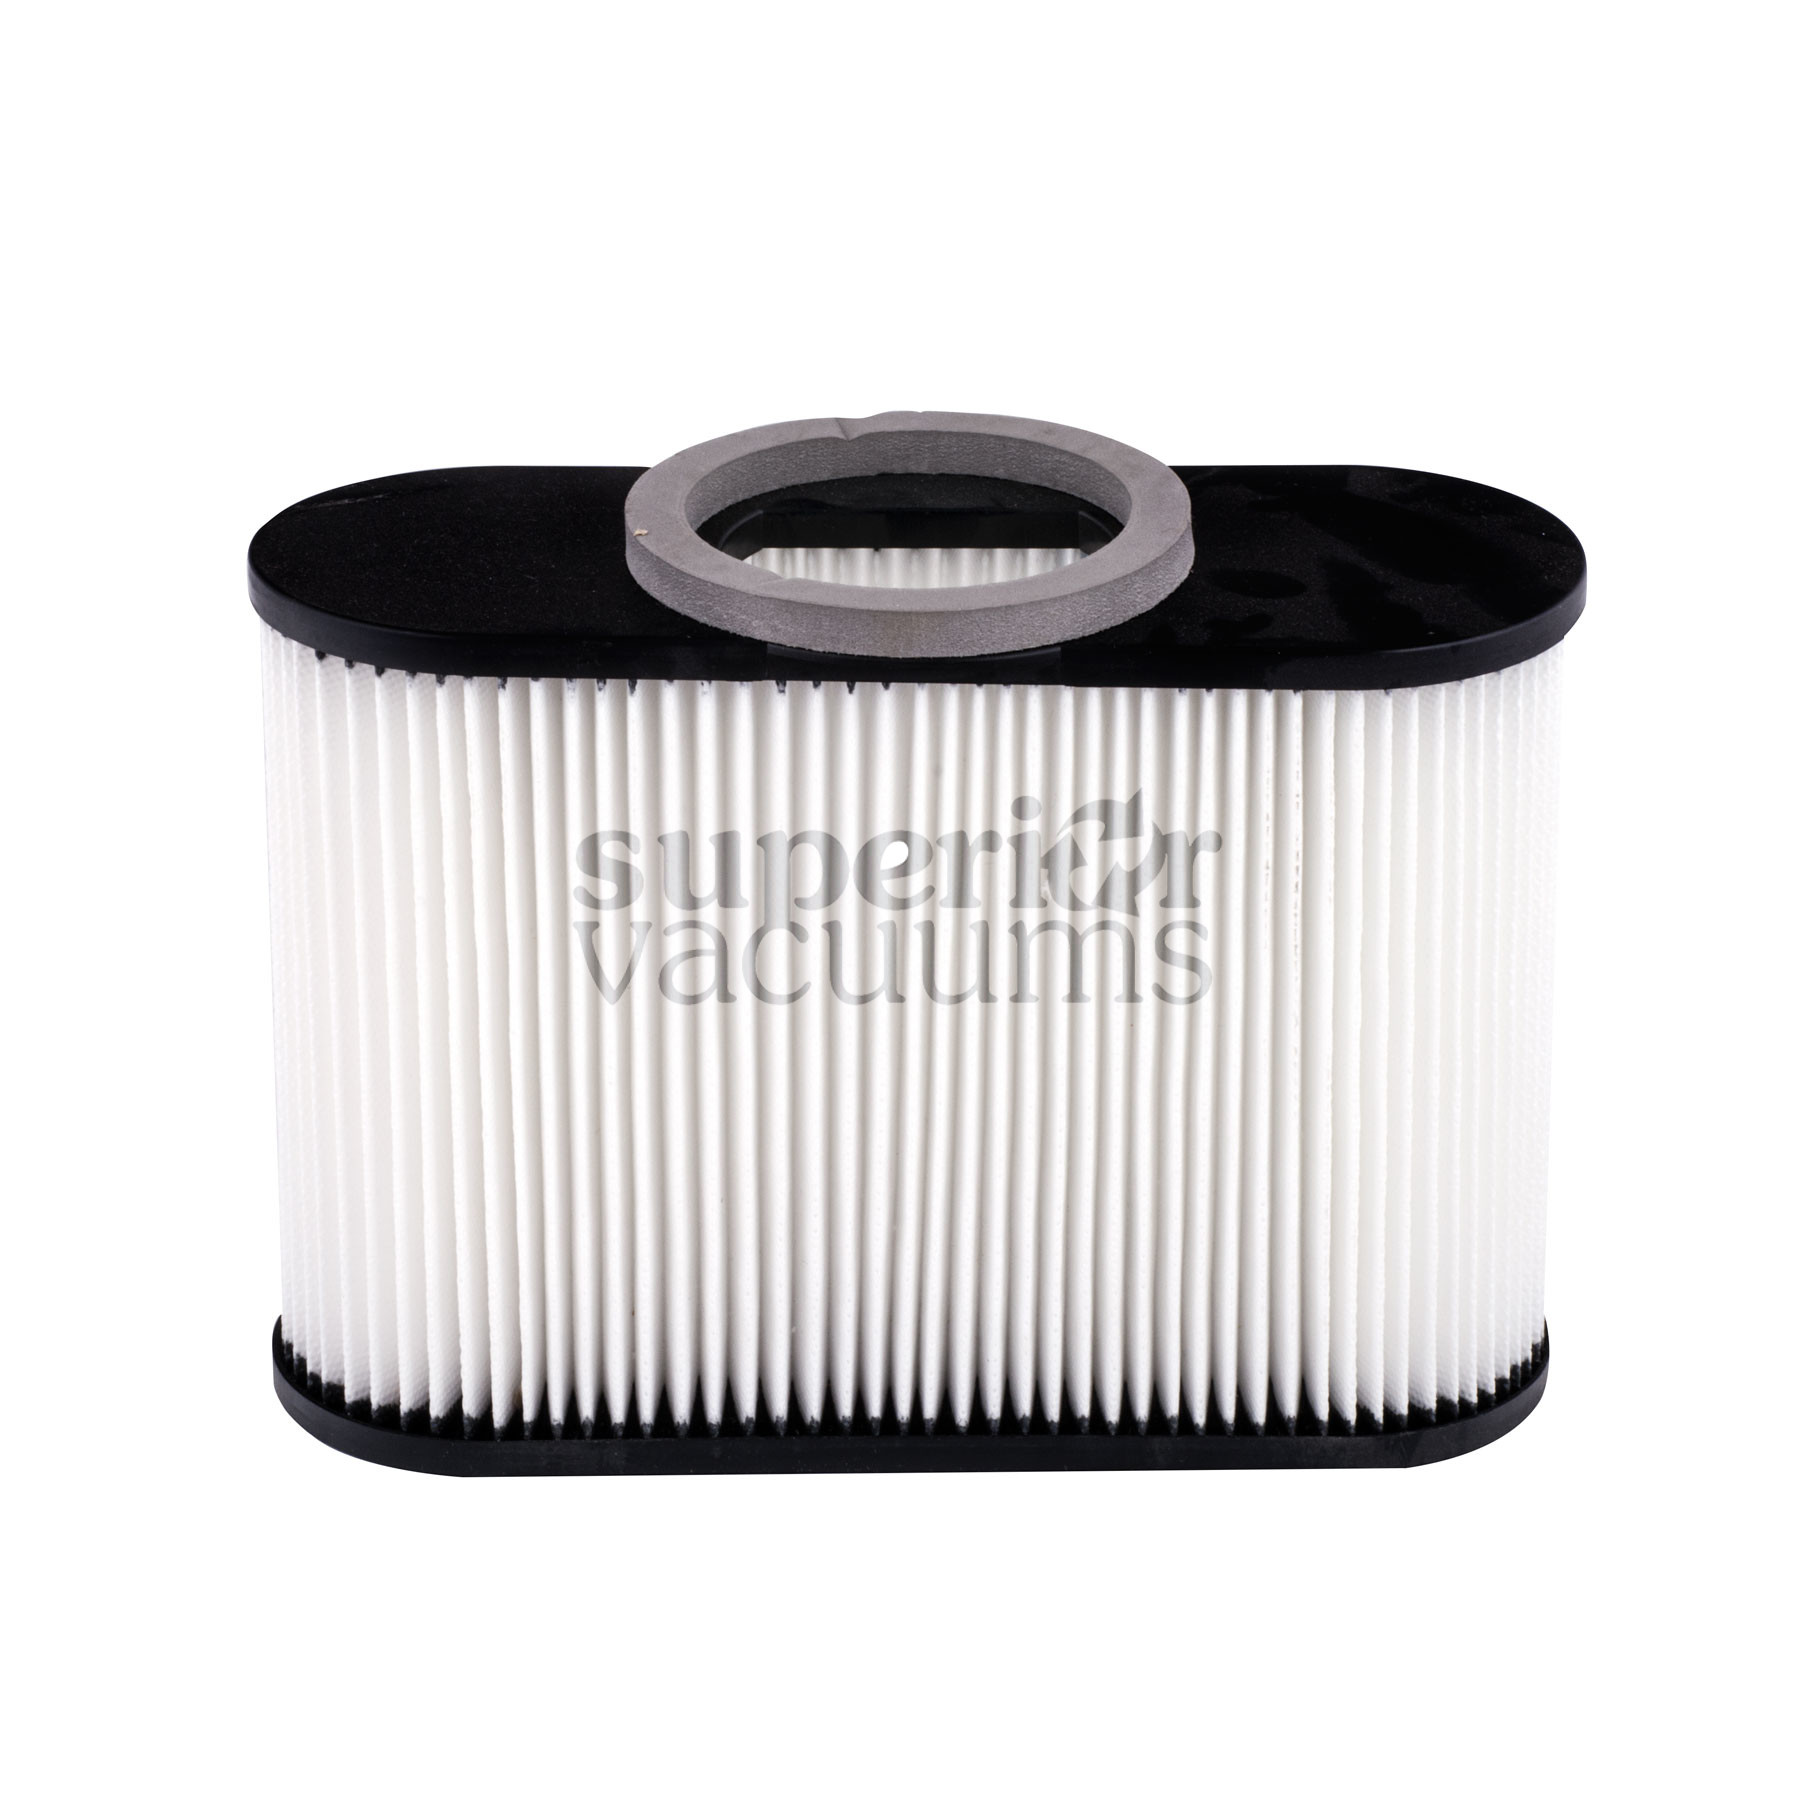 Polyester Washable Pleated Filter Cartridge To Fit Qb Q200